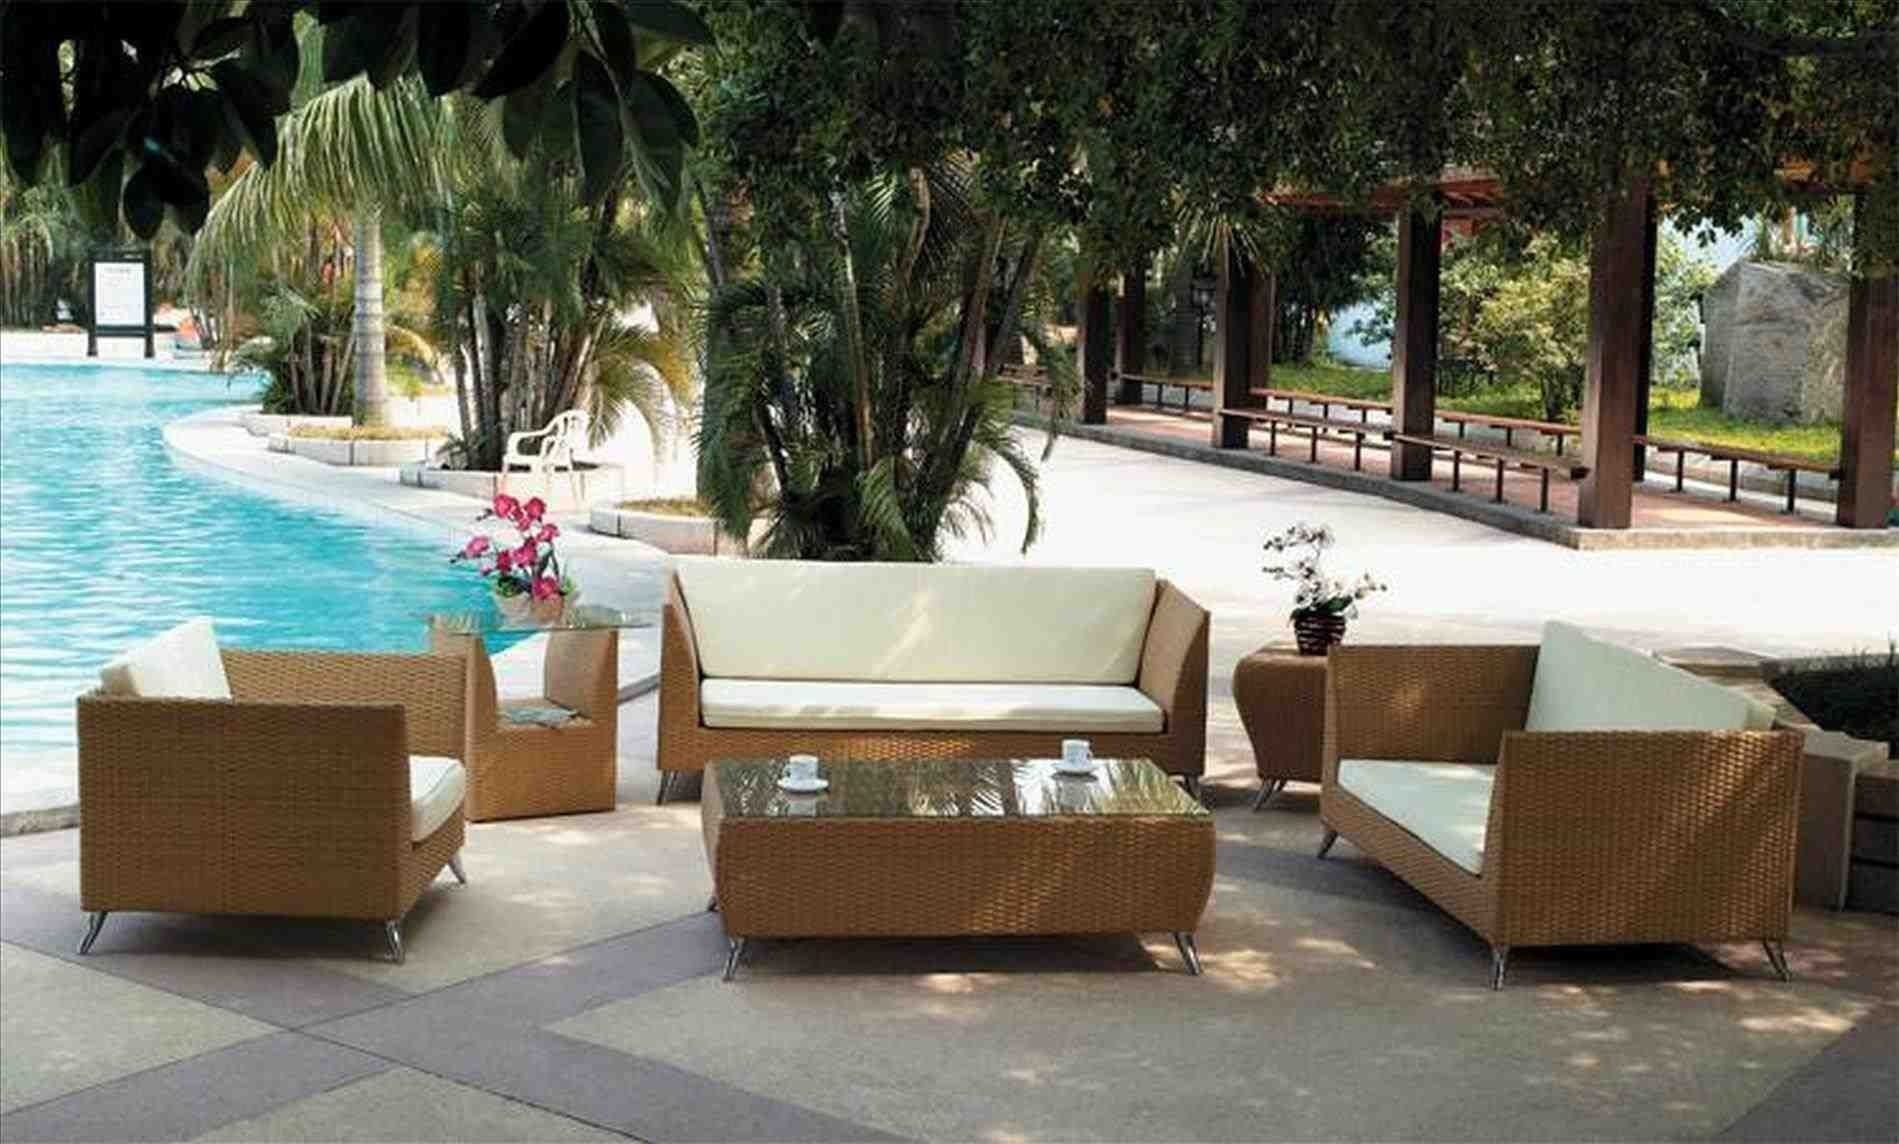 inexpensive modern patio furniture budget modern patio furniture cheap patio furniture inexpensive modern expansive affordable outdoor